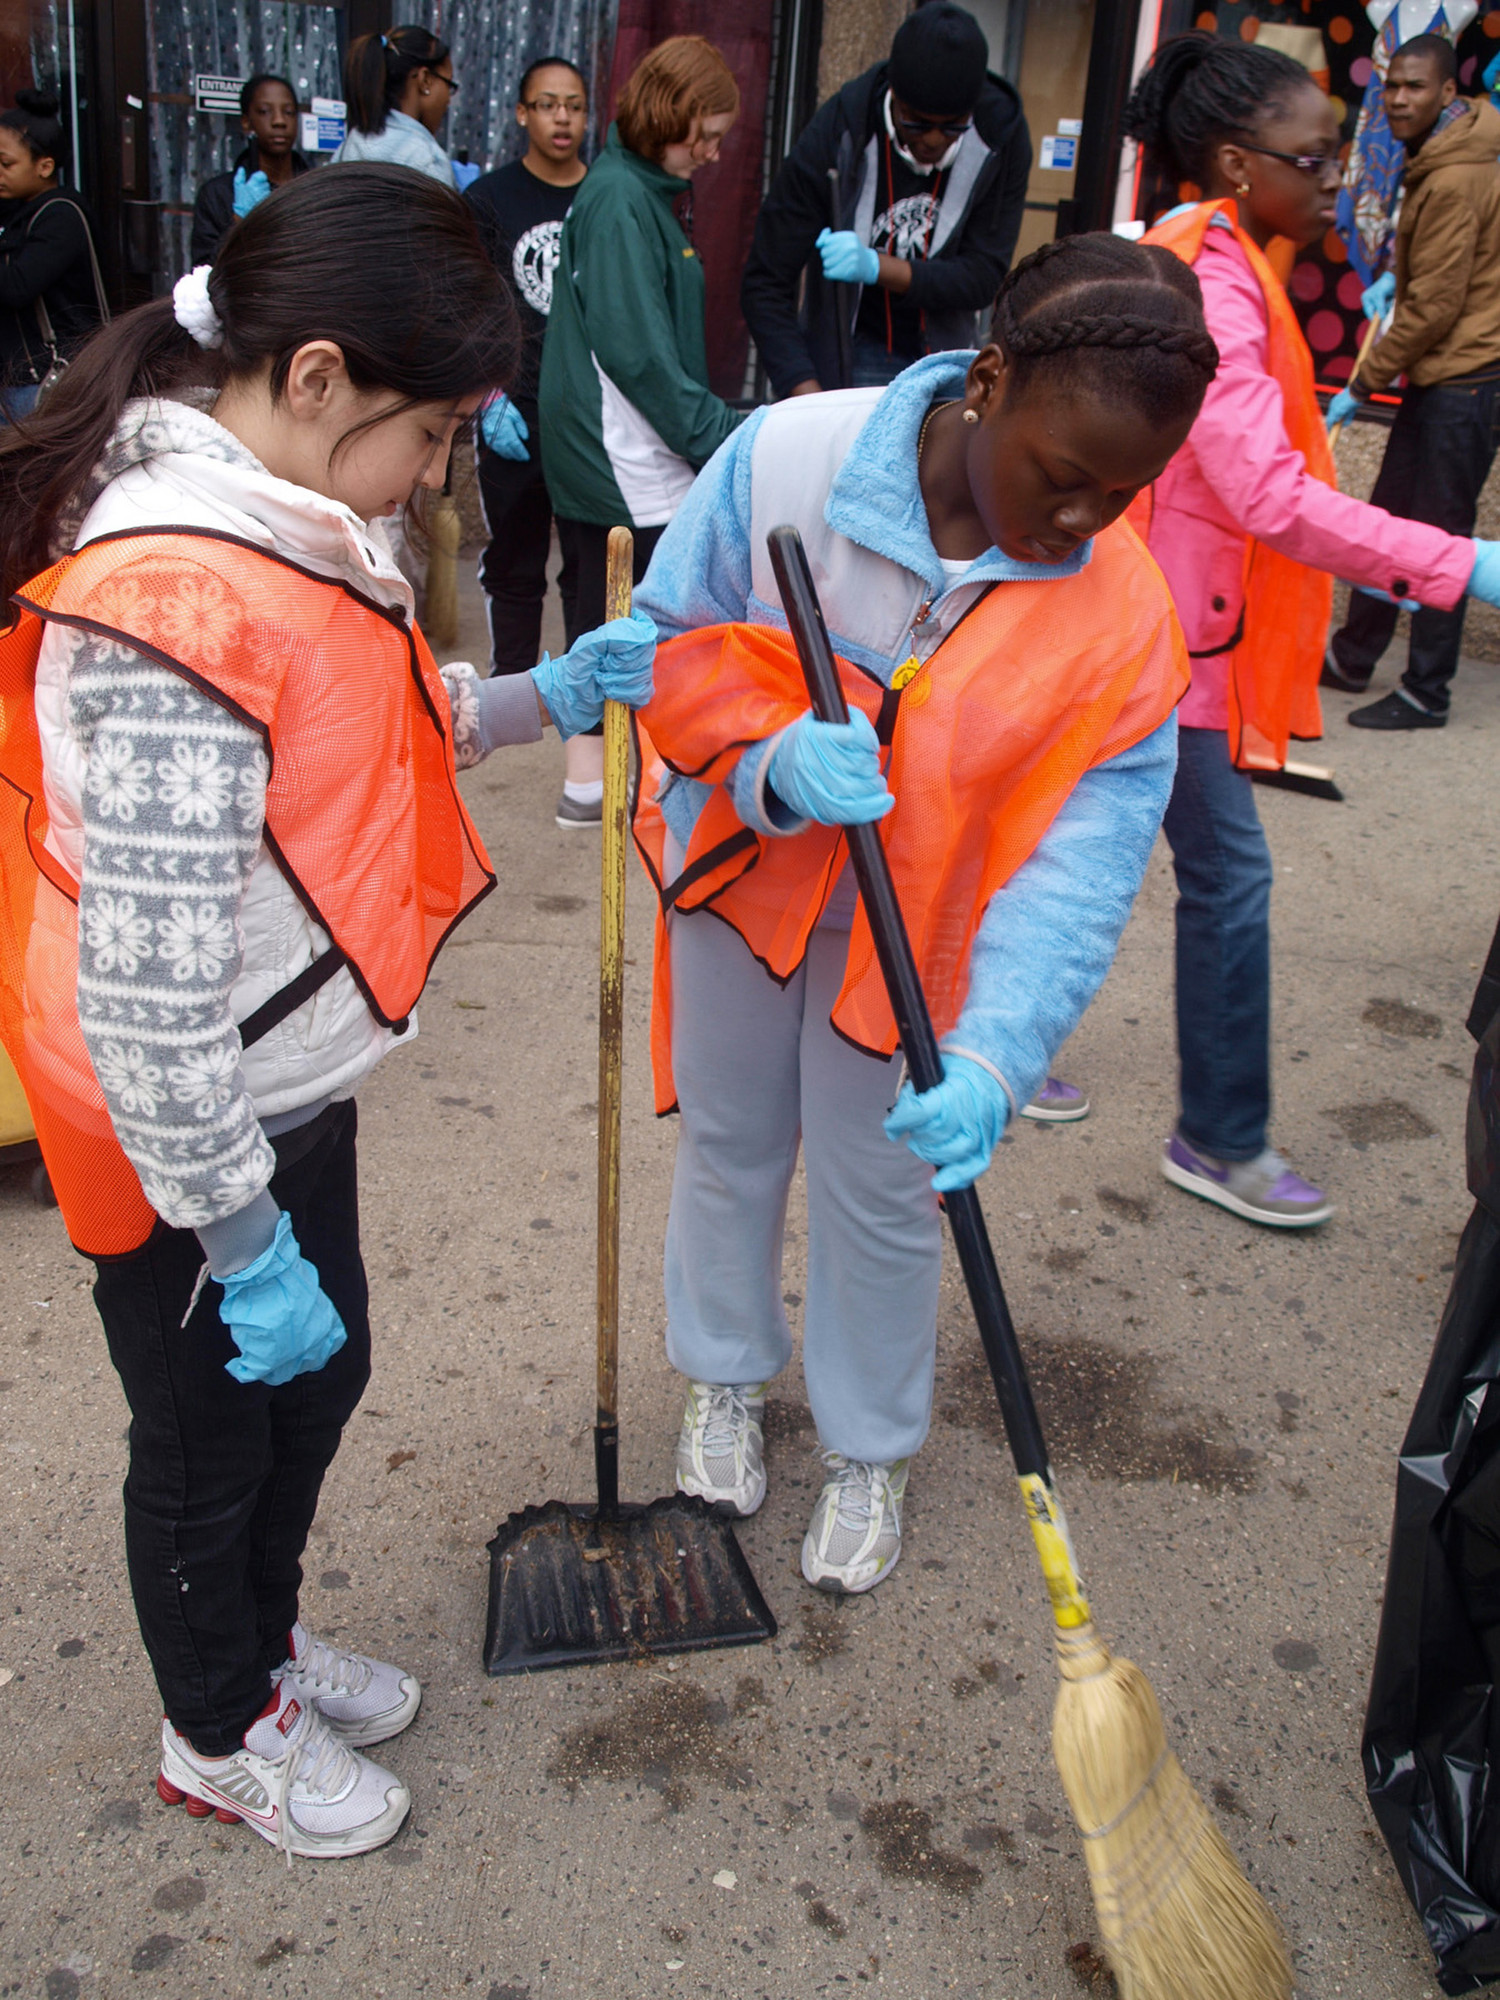 Children helped one another in their efforts on April 20.